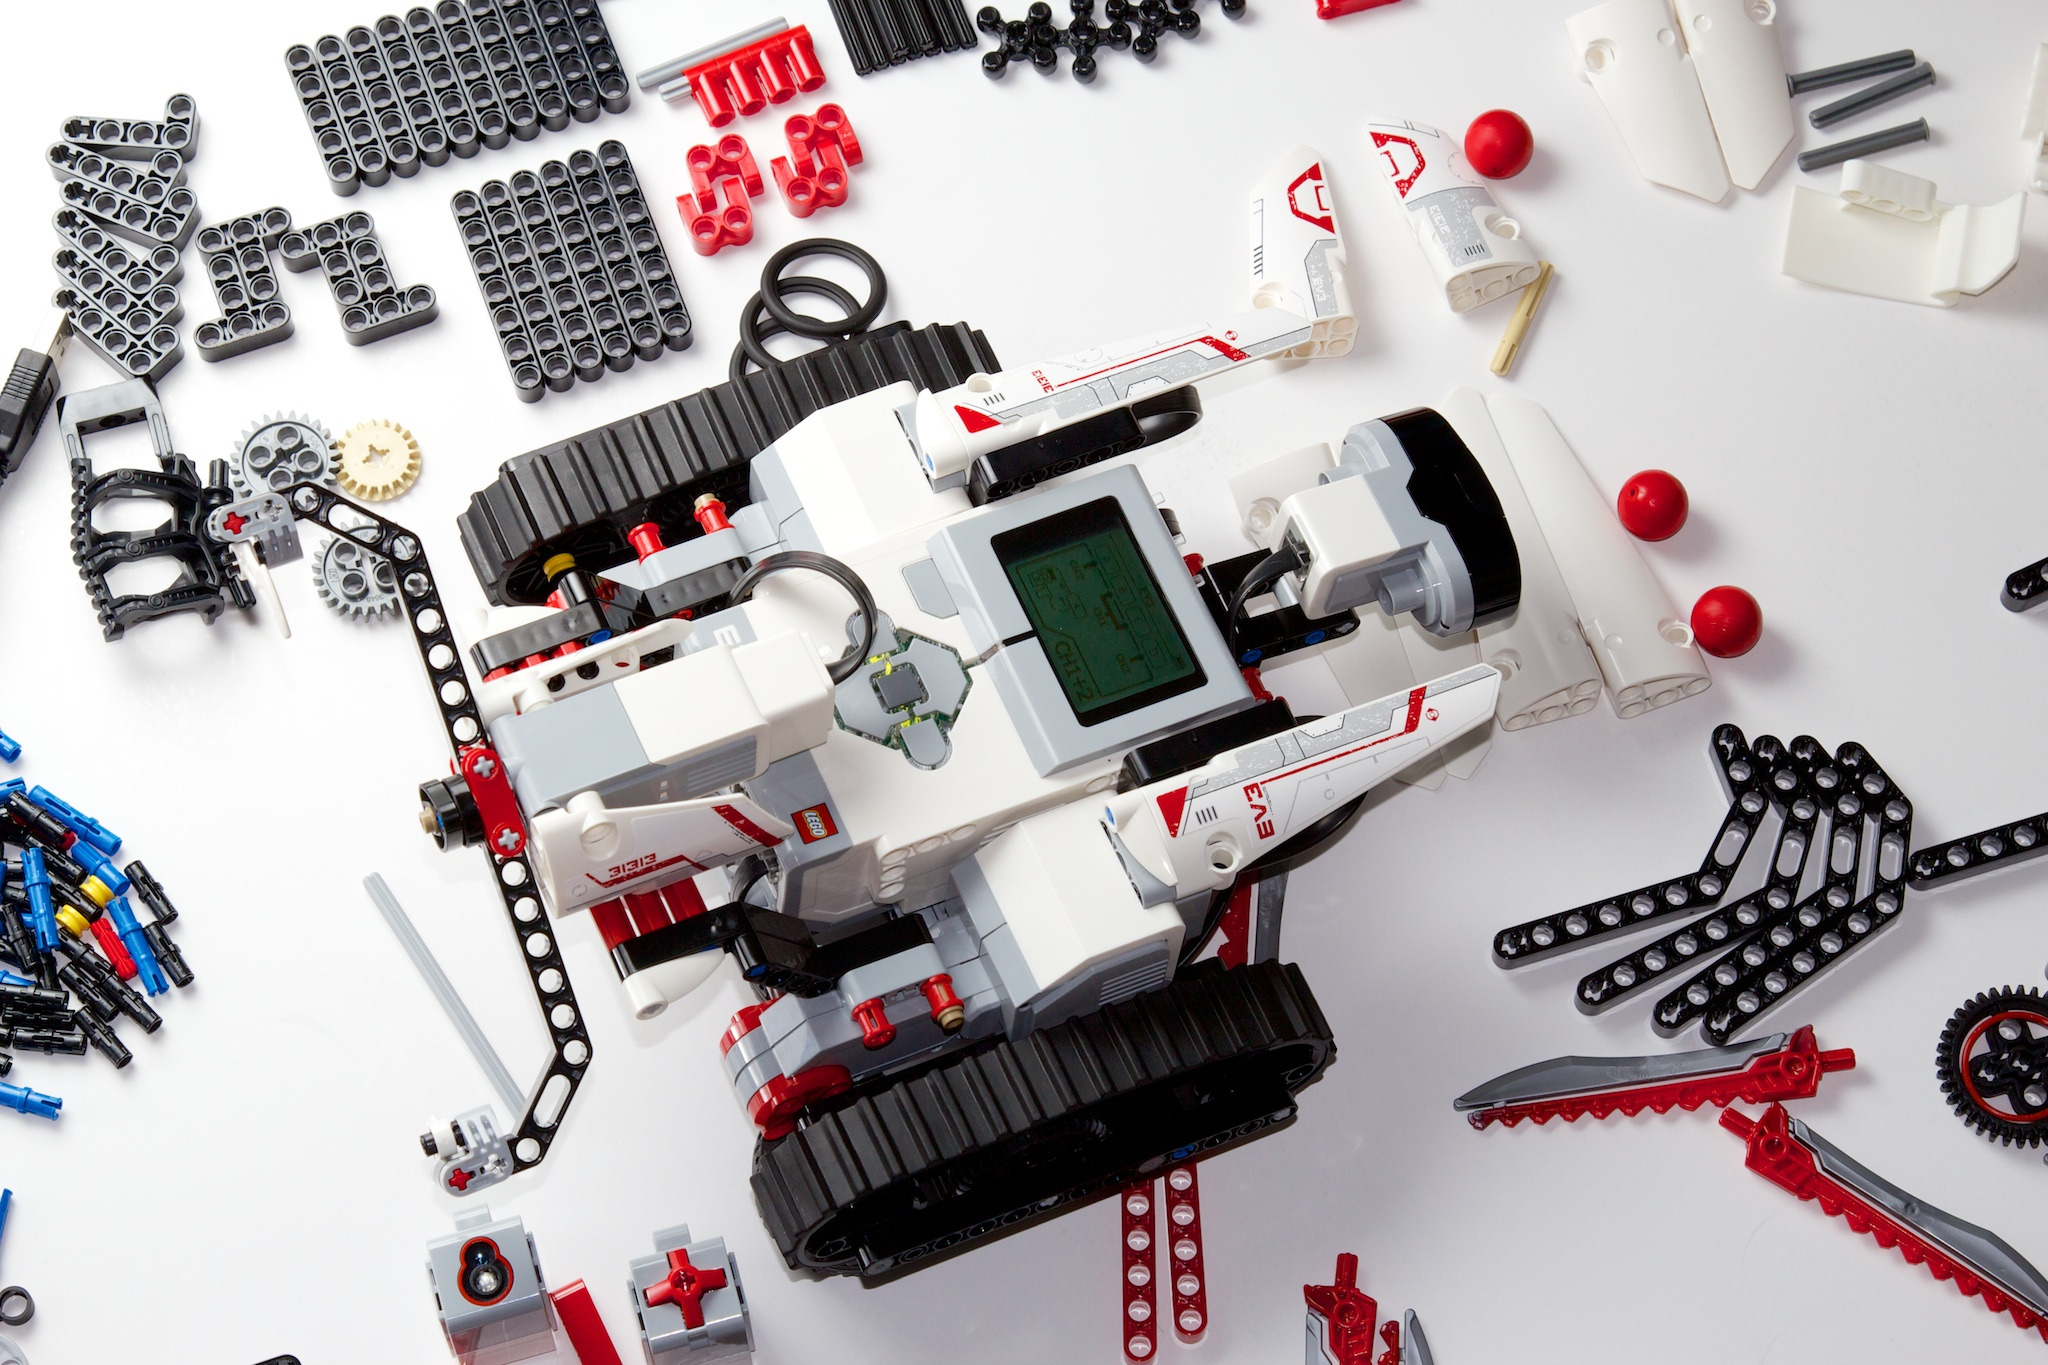 Review Lego Mindstorms Ev3 Means Giant Robots Powerful Computers